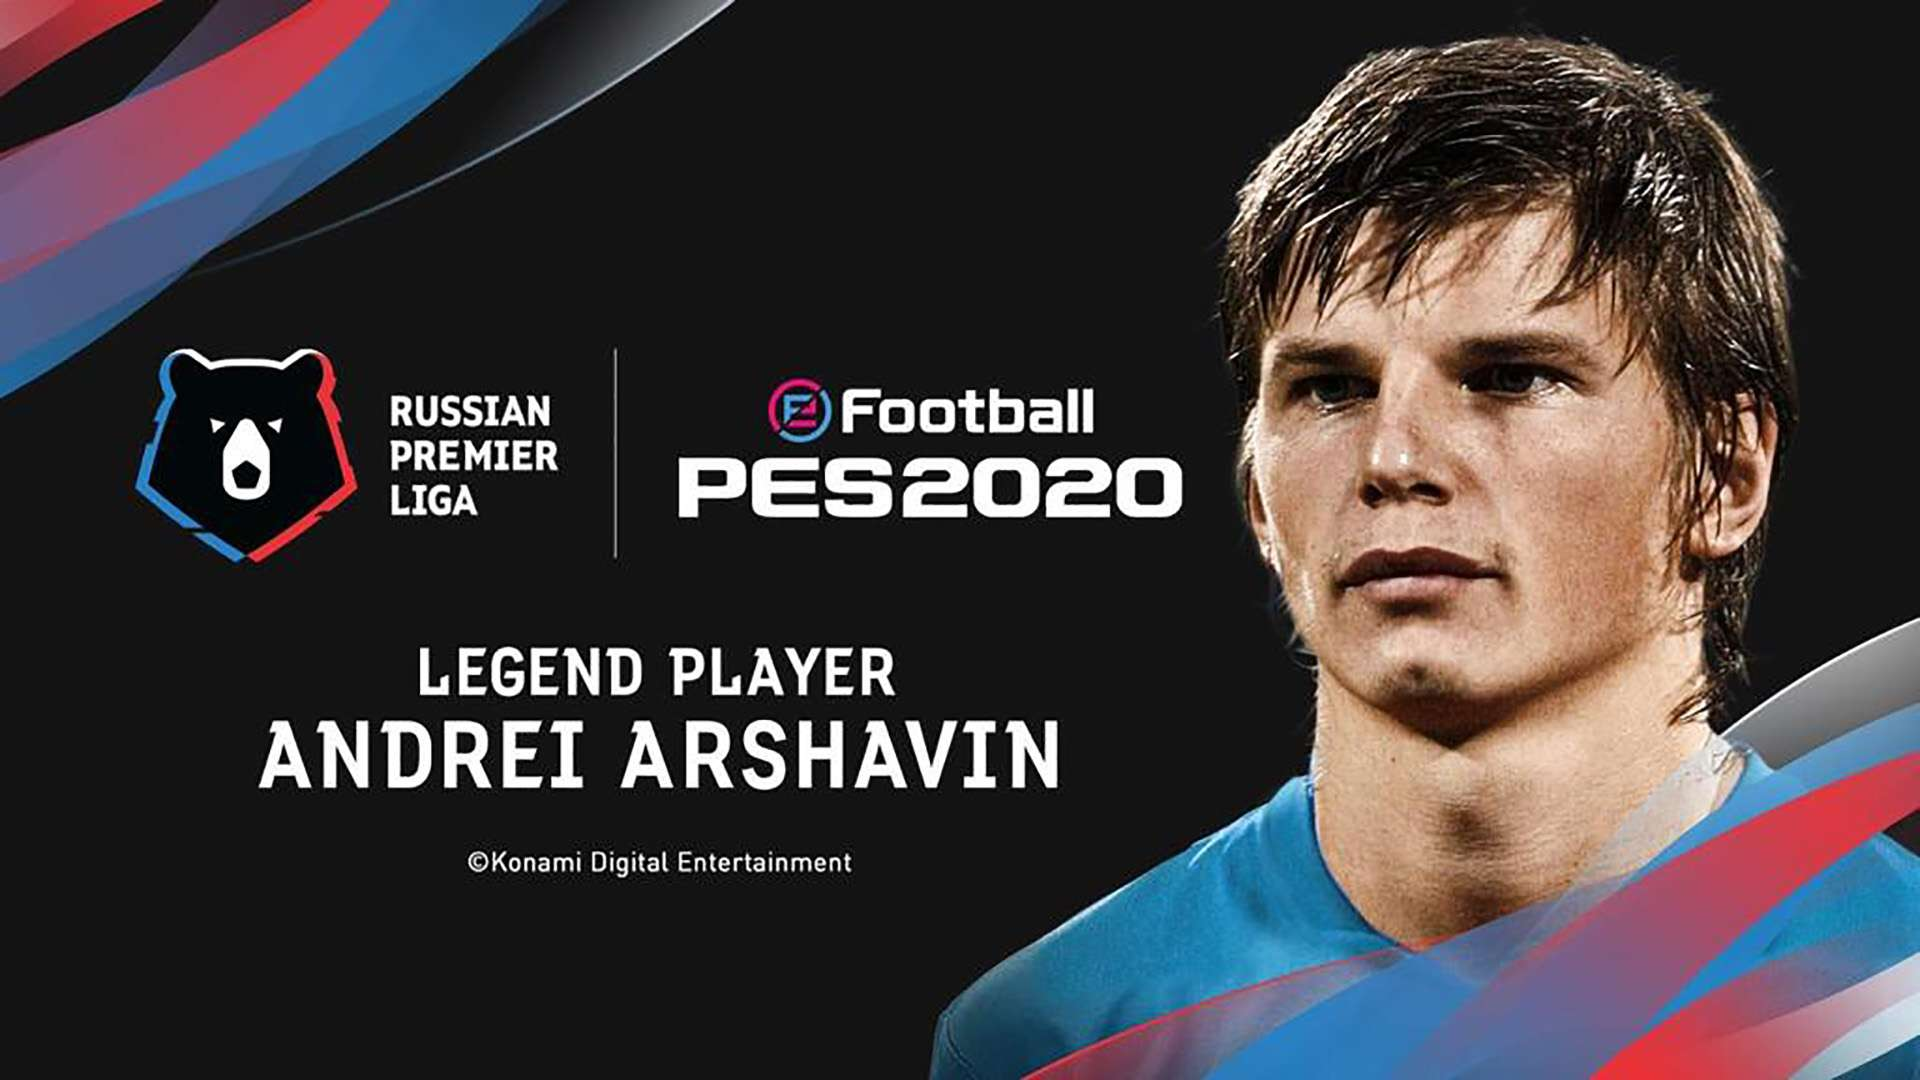 FIFA 20 Icons vs PES 2020 Legends: Which past players are in